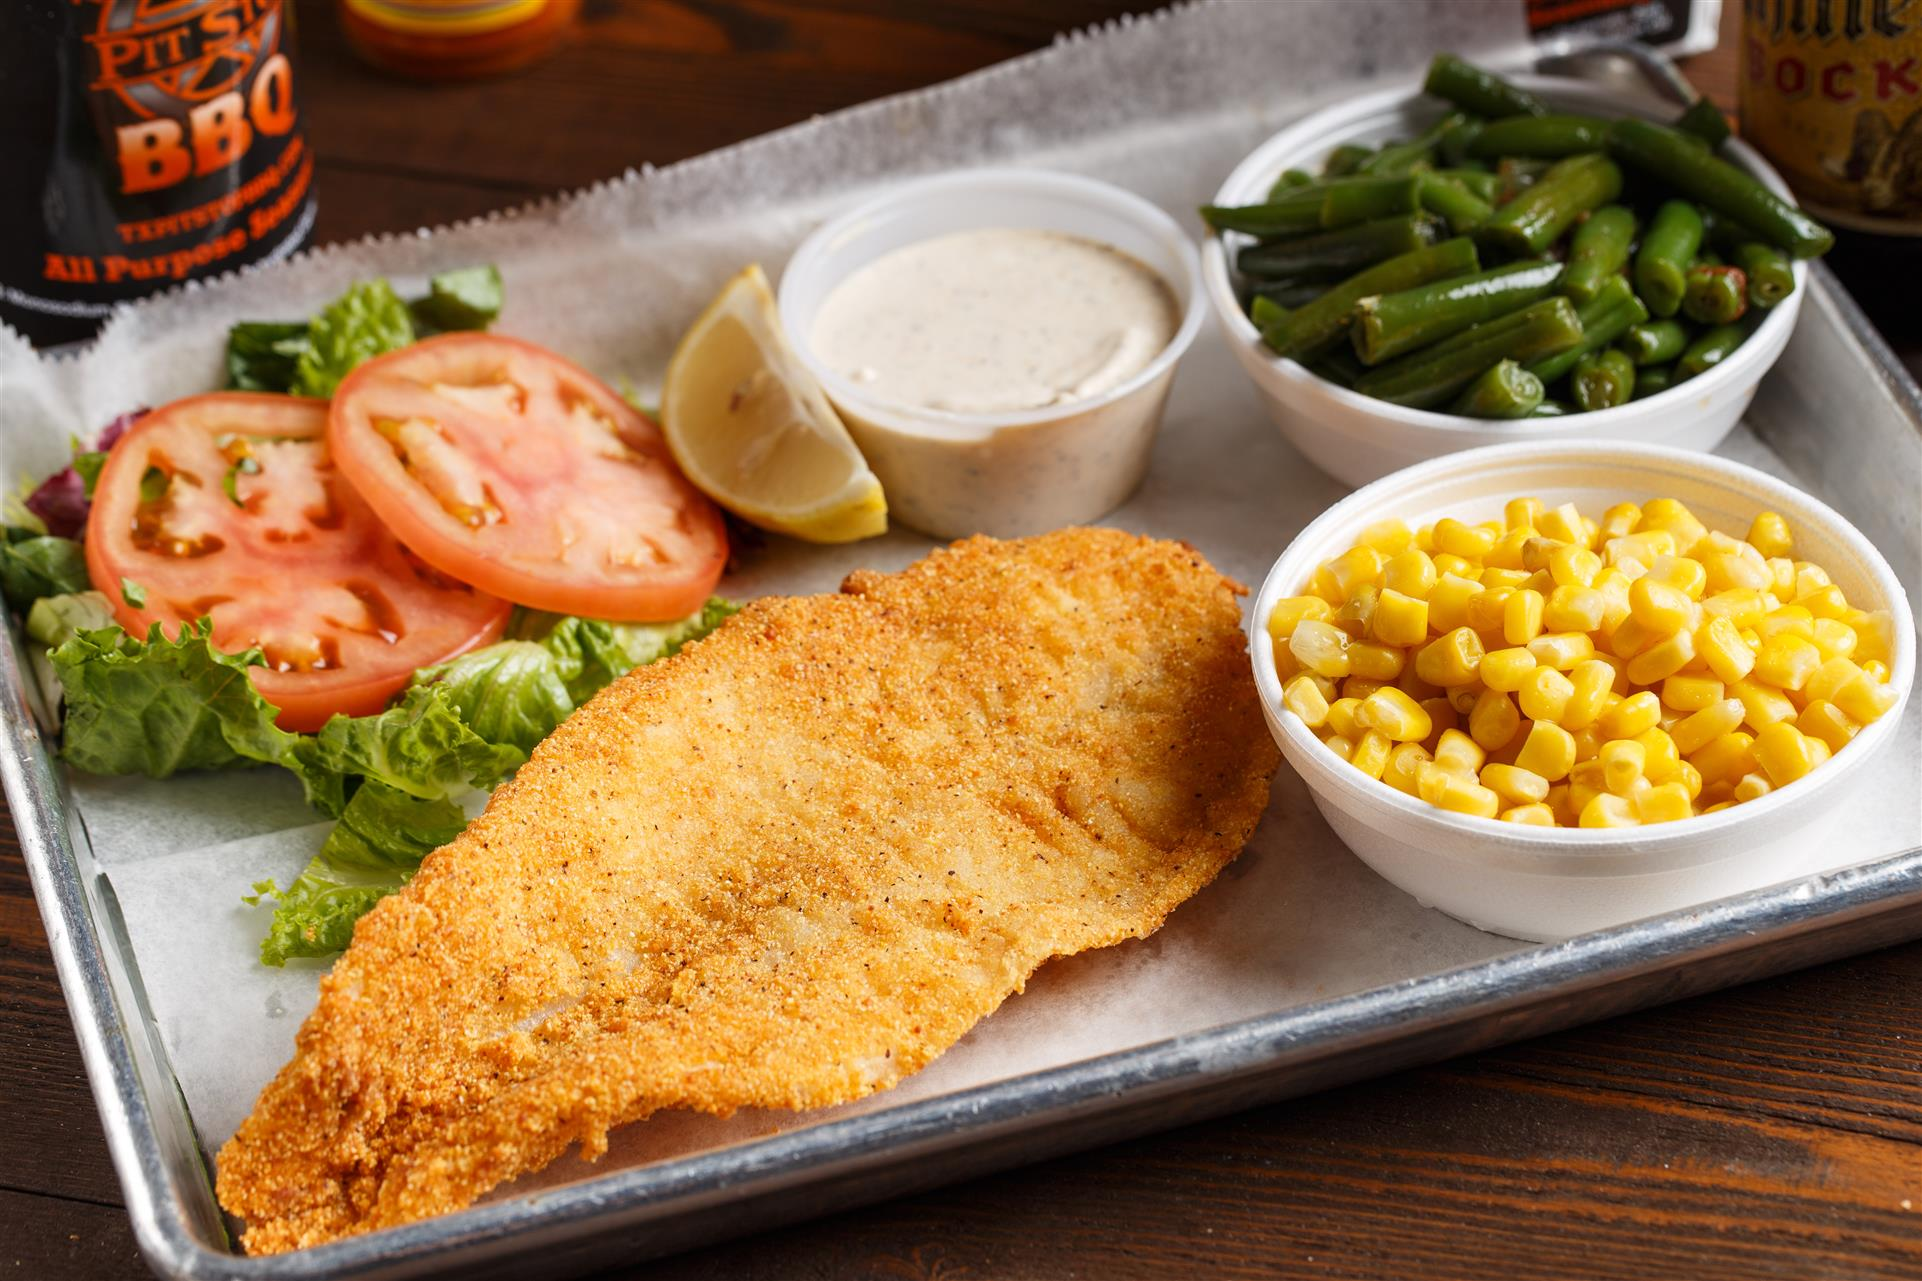 Fried fish with a side of green beans, corn, lettuce, and tomato